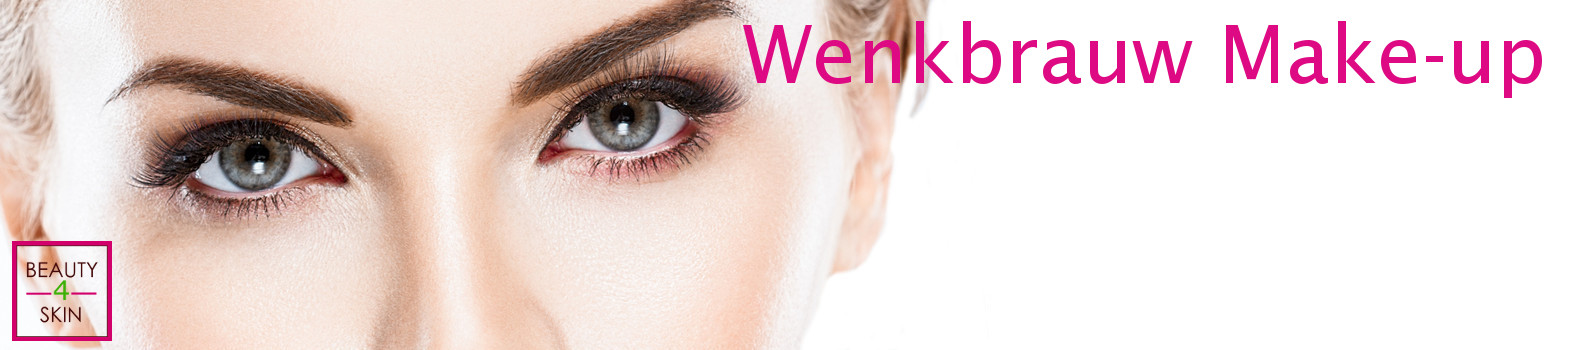 Wenkbrauw Make-up